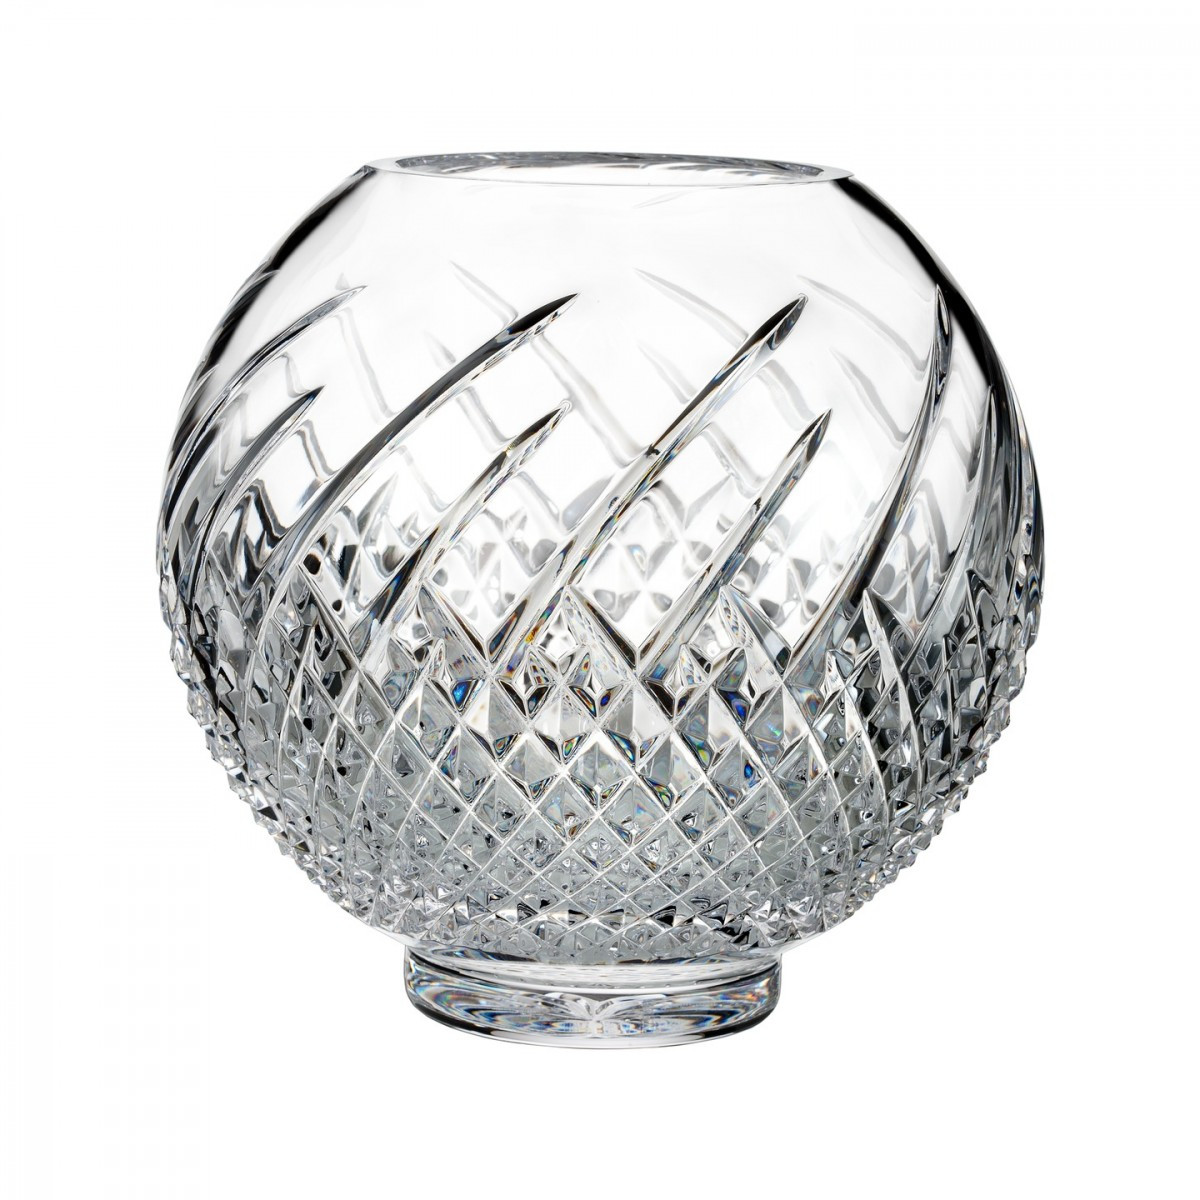 waterford rose bowl vase of wild atlantic way rose bowl house of waterford crystal us with wild atlantic way rose bowl